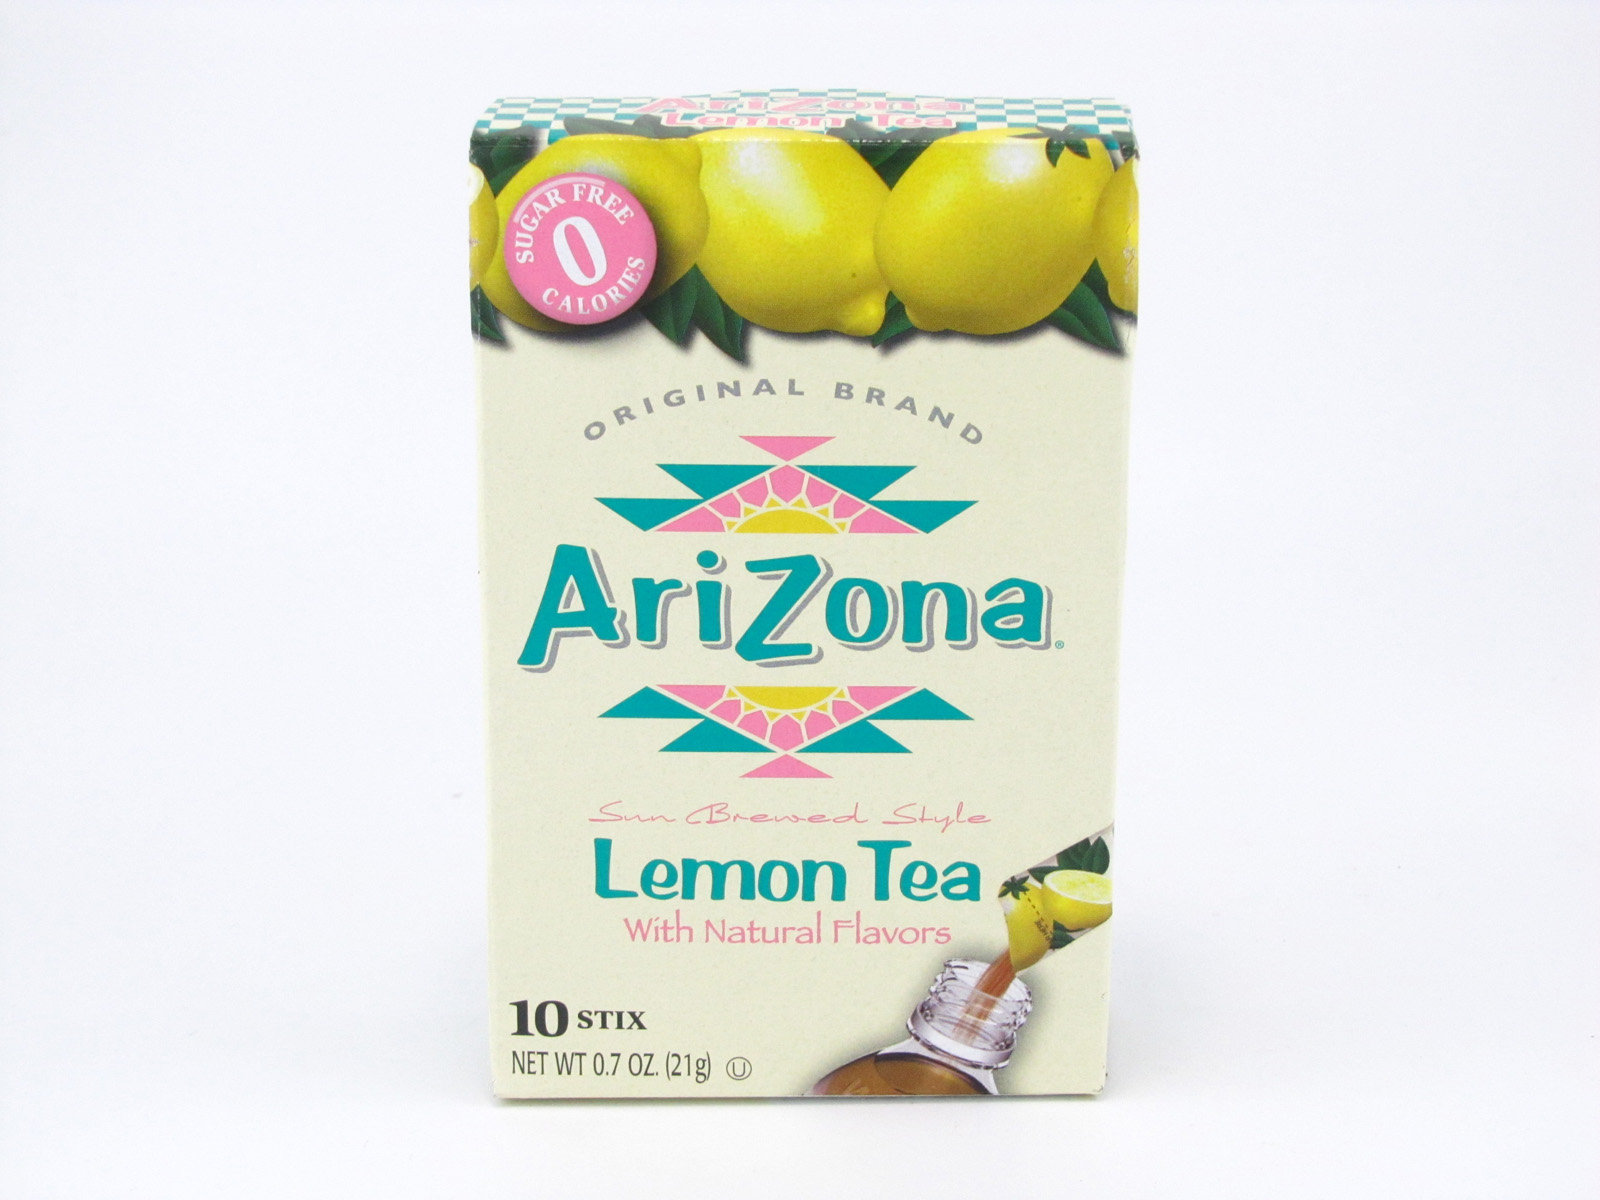 Arizona Lemon Tea Mix front image